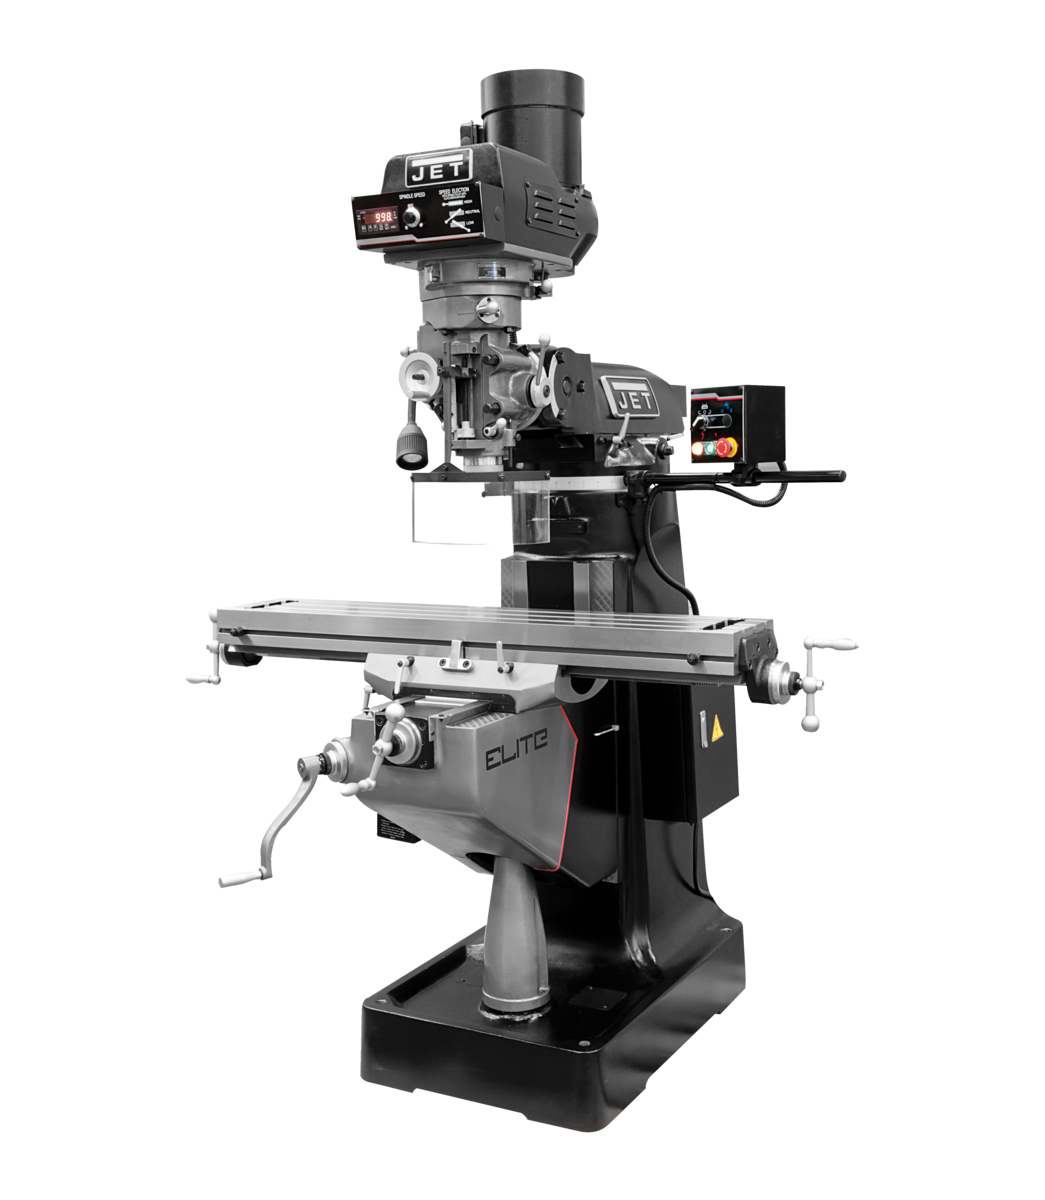 EVS-949 Mill with 3-Axis ACU-RITE 203 (Knee) DRO and Servo X, Y-Axis Powerfeeds